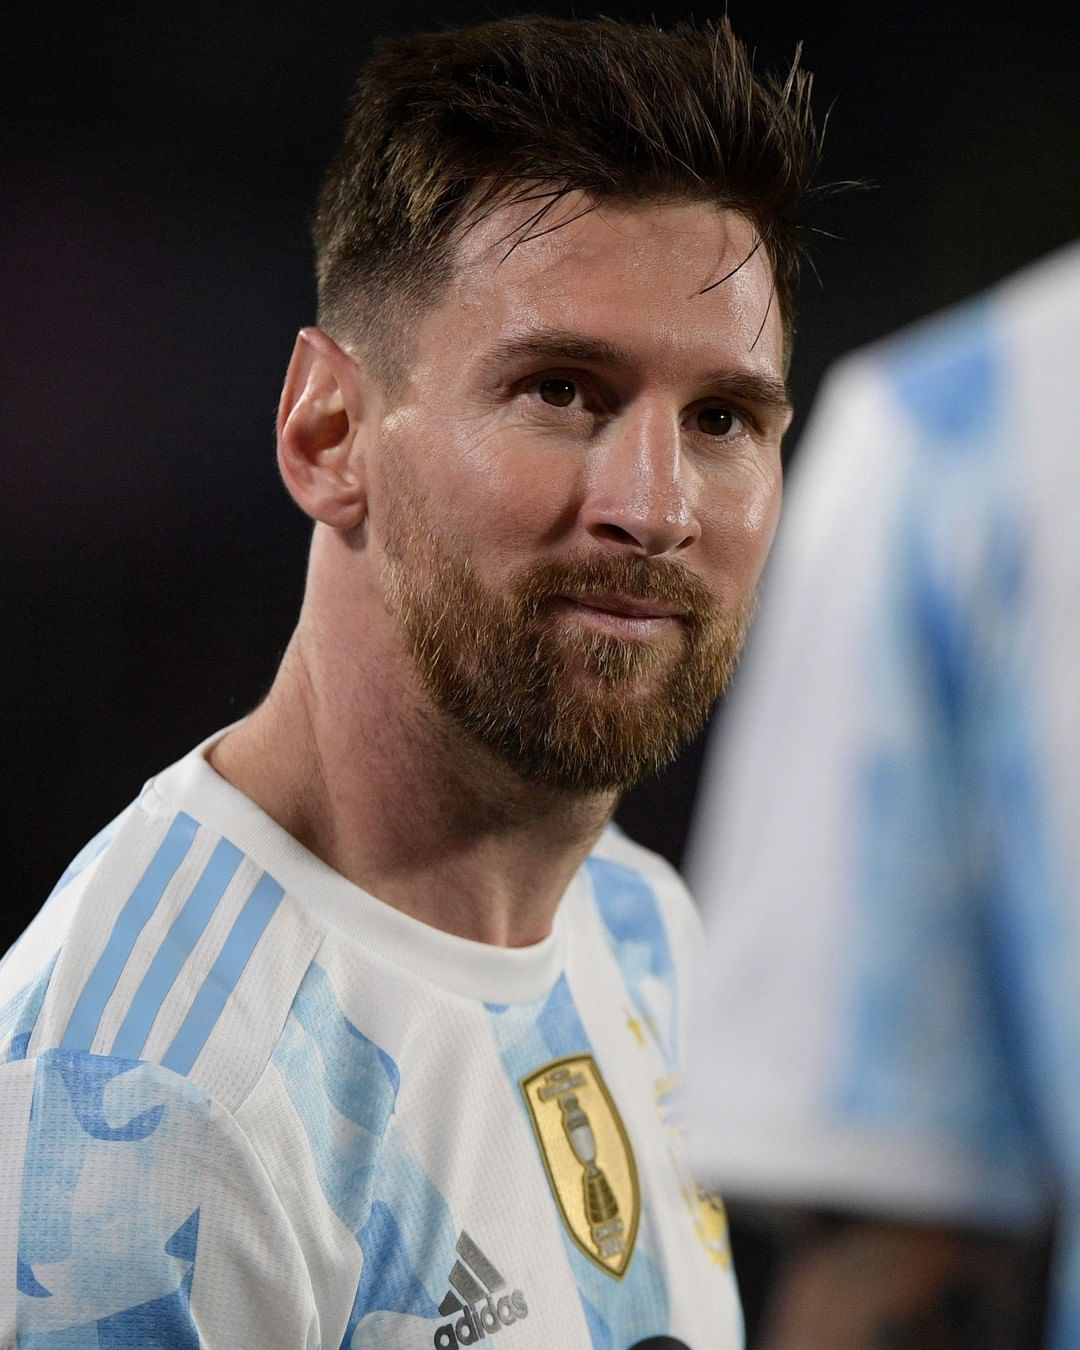 Lionel Messi is the first South American player to score 80 international goals...